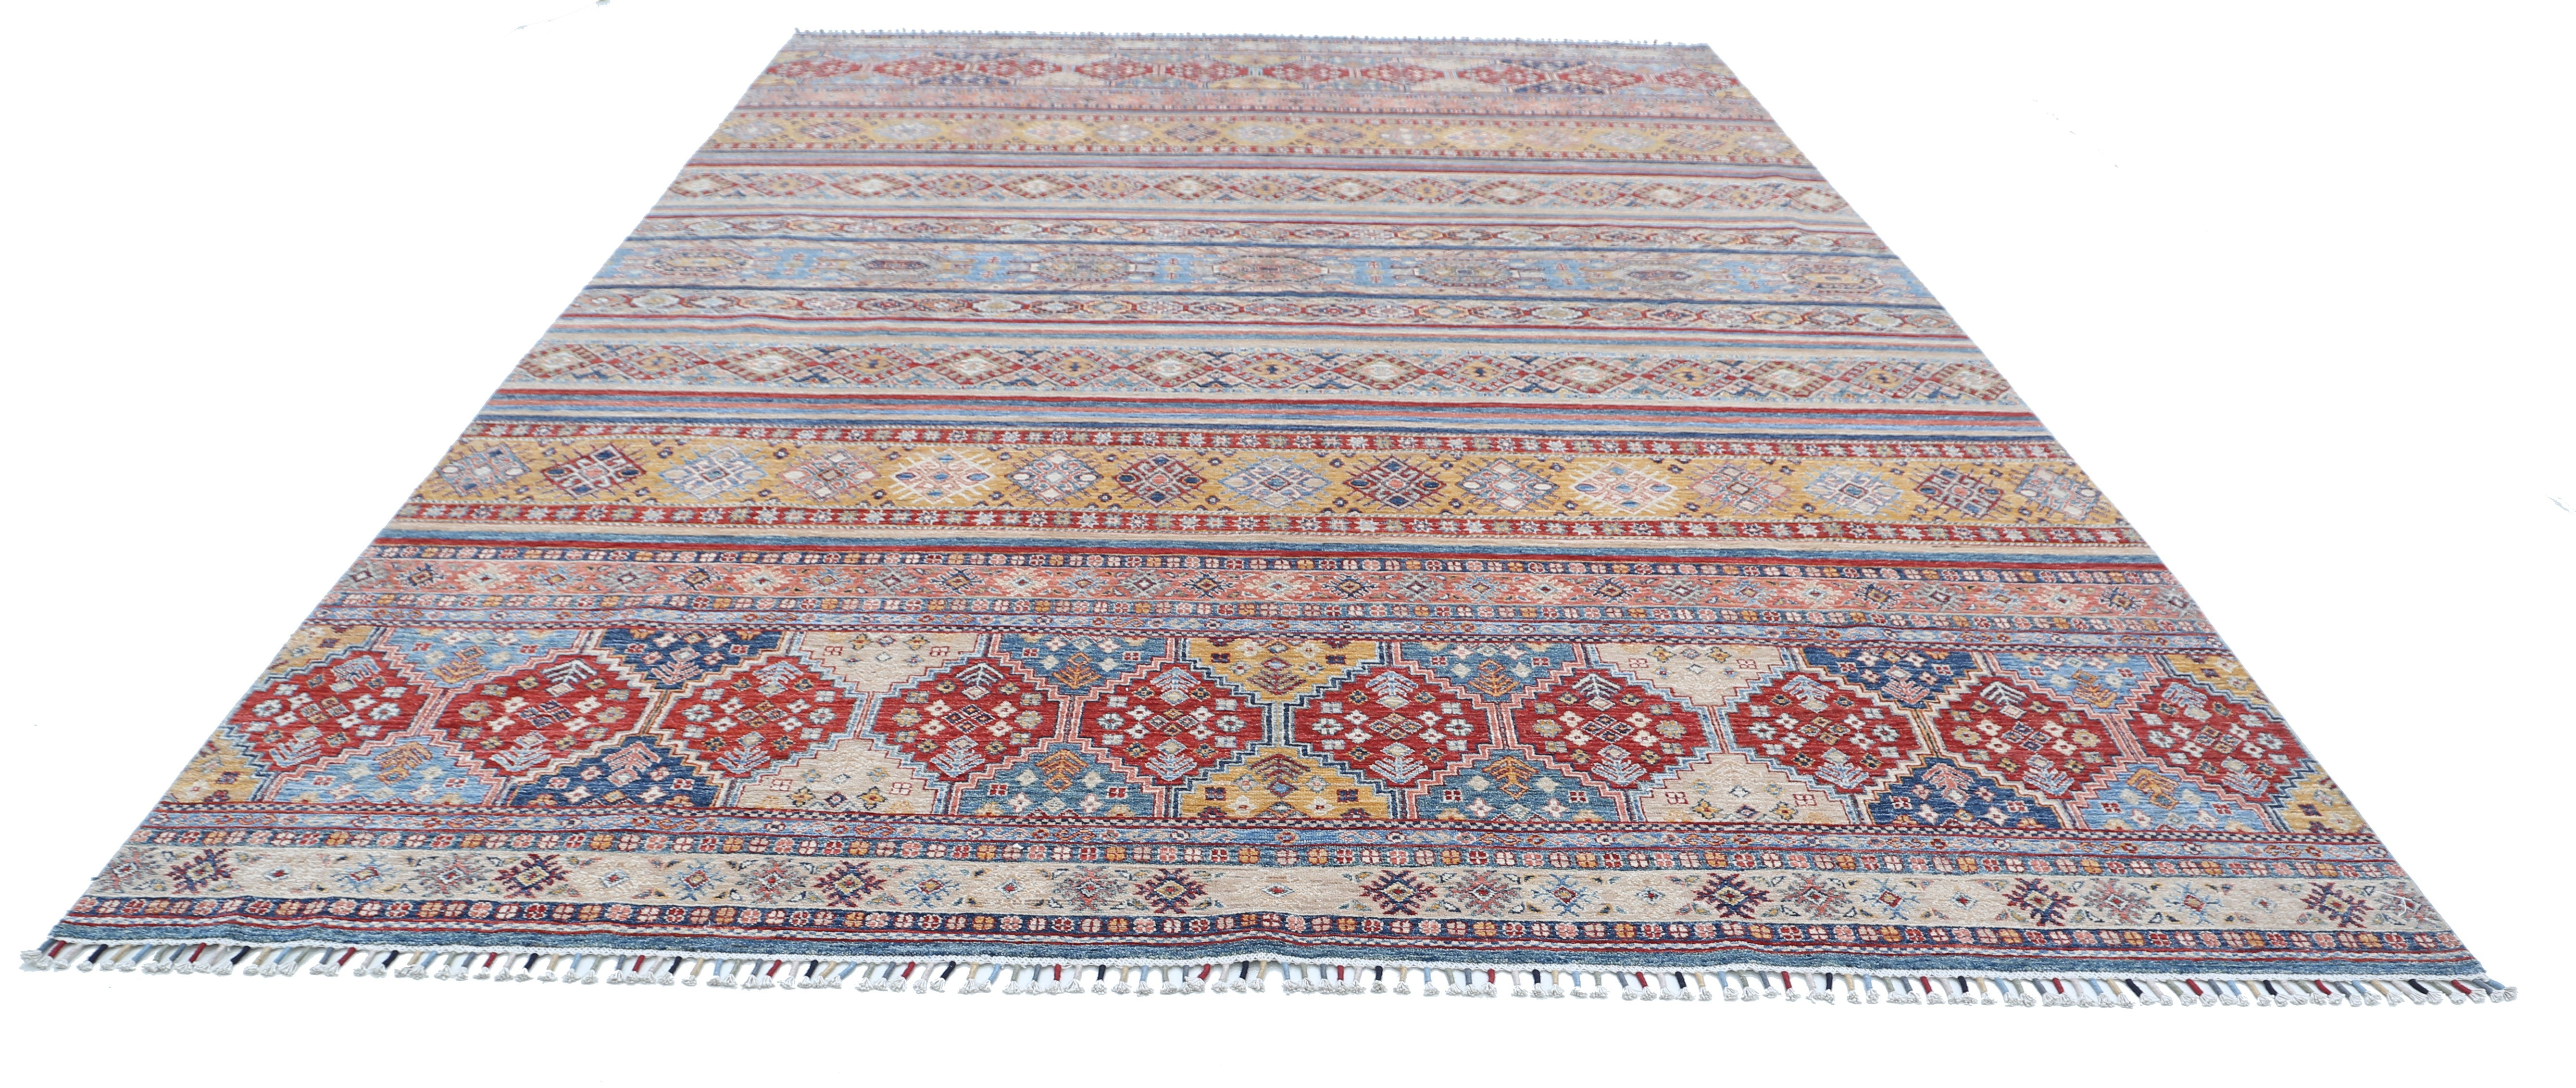 area rugs at carpet culture, decorative rug, handmade rugs